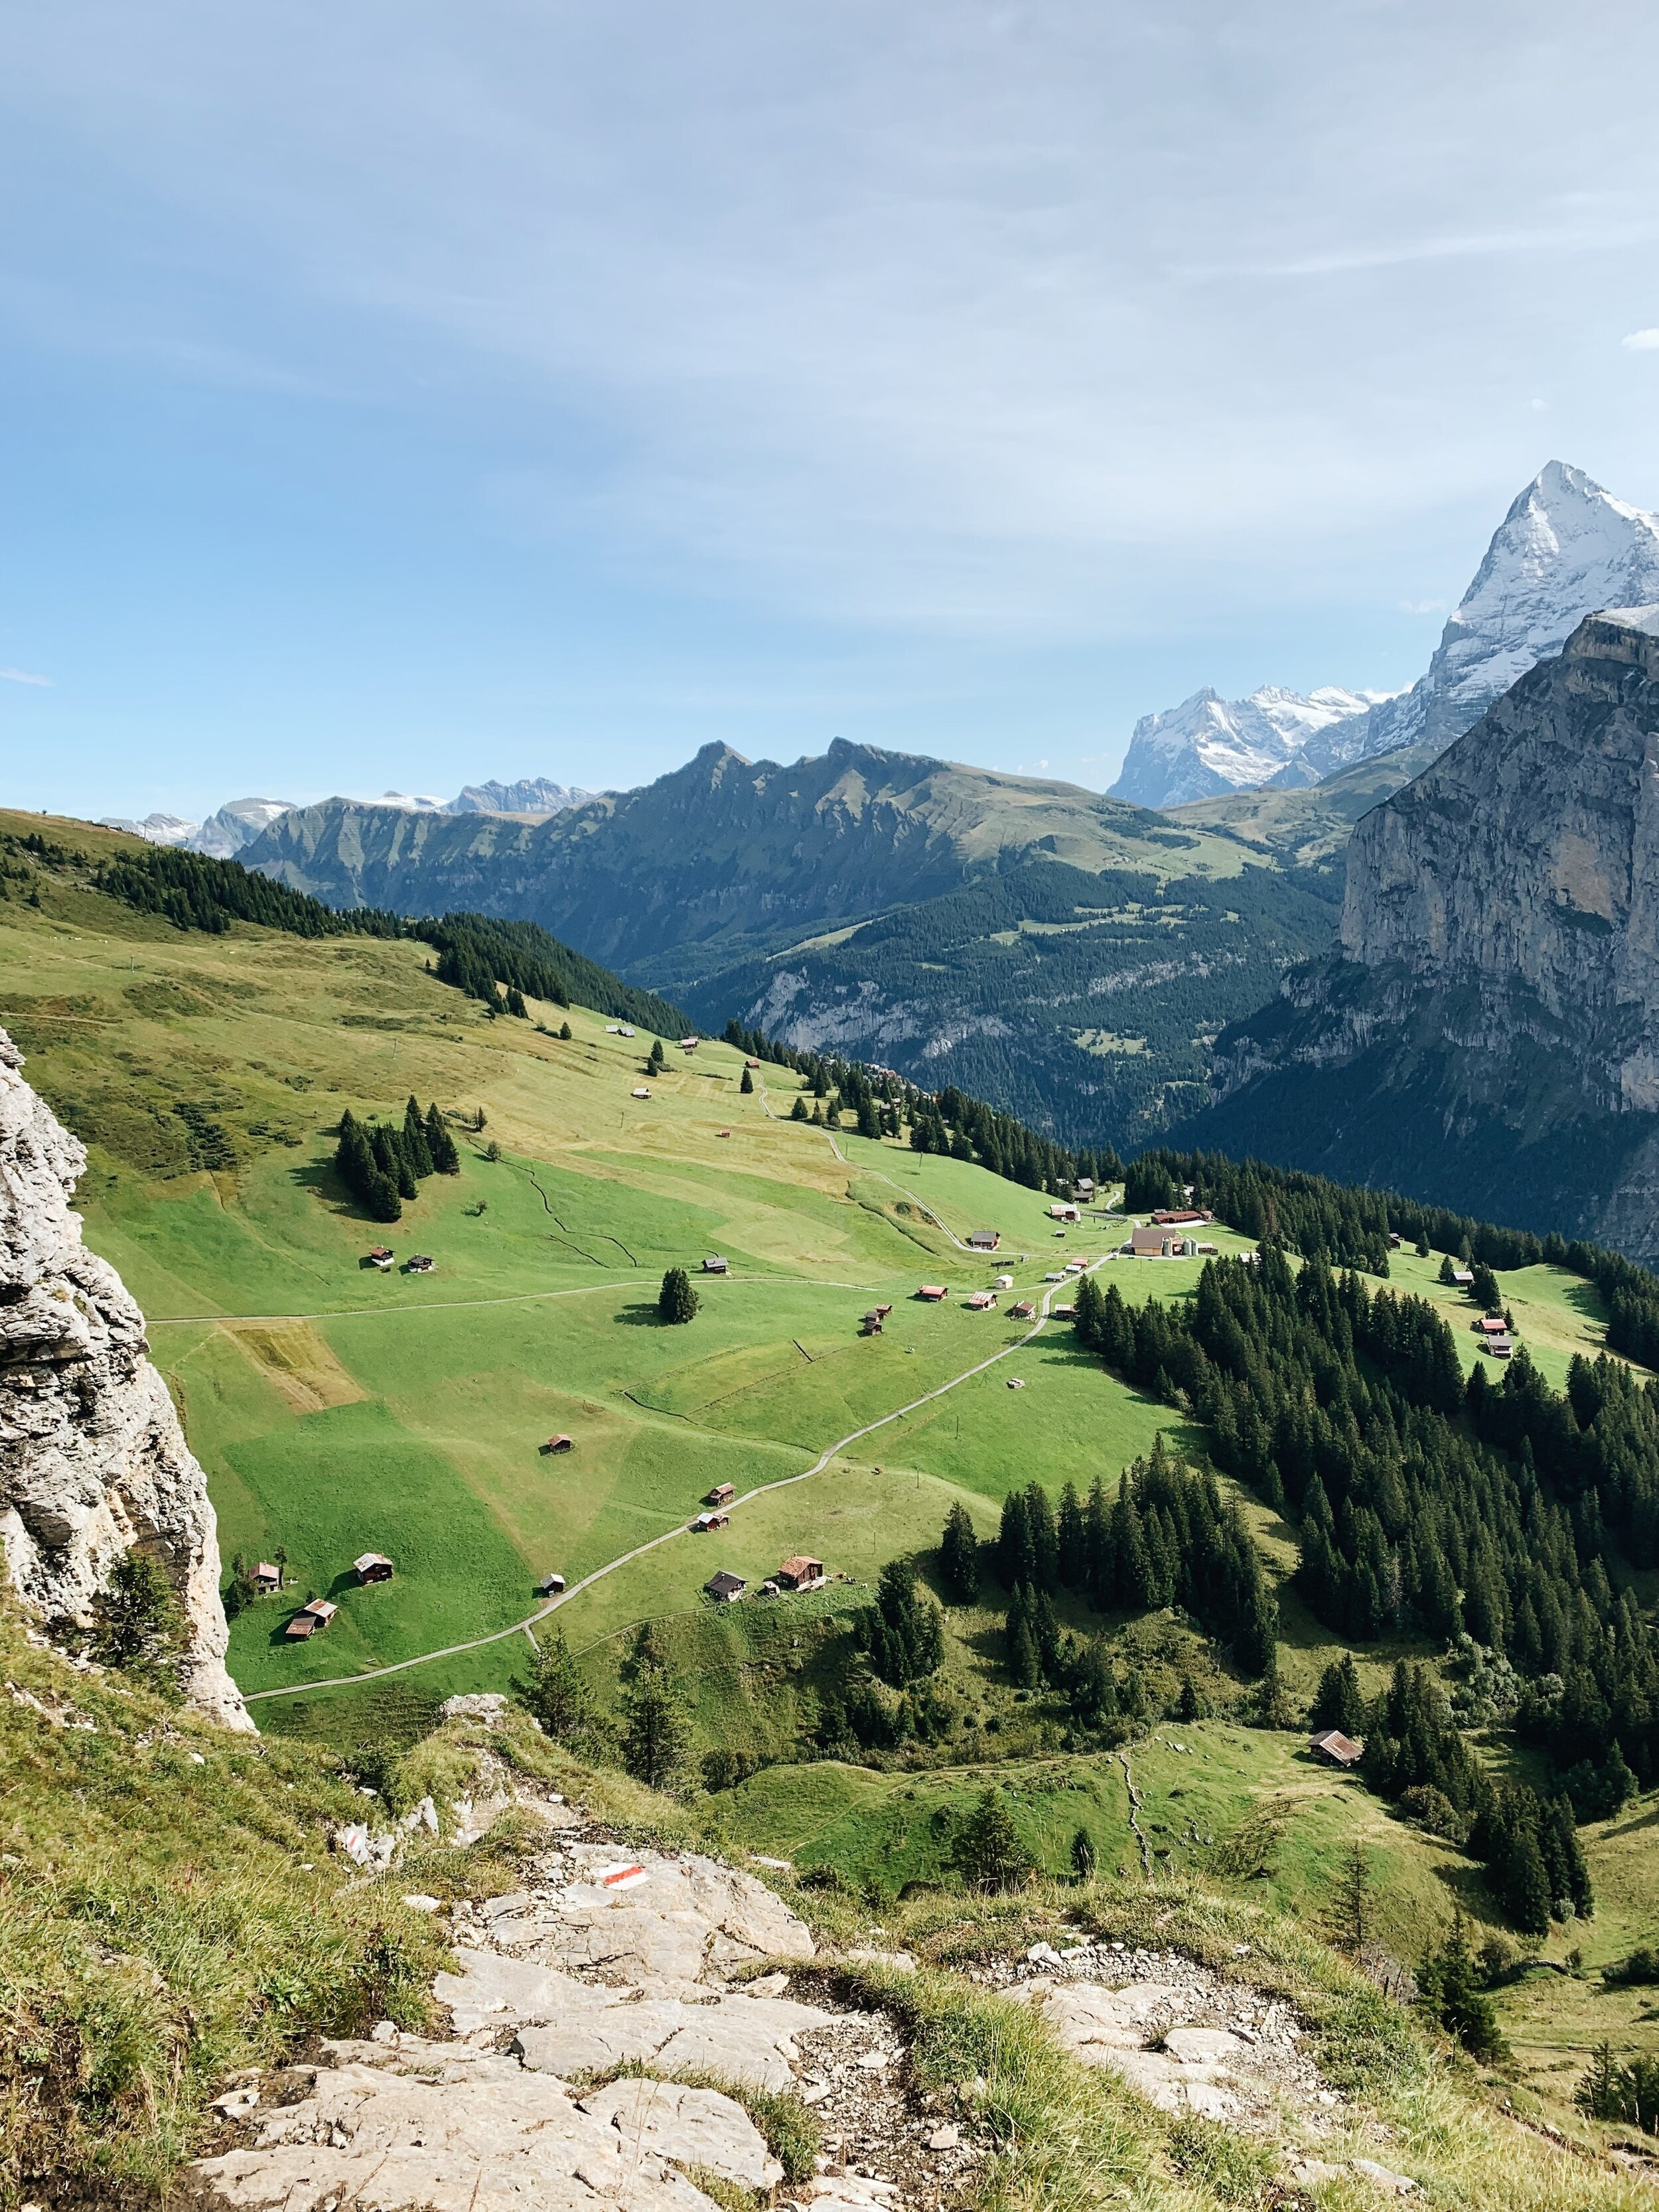 The first day hiking: En route from Murren to Rotstockhutte.